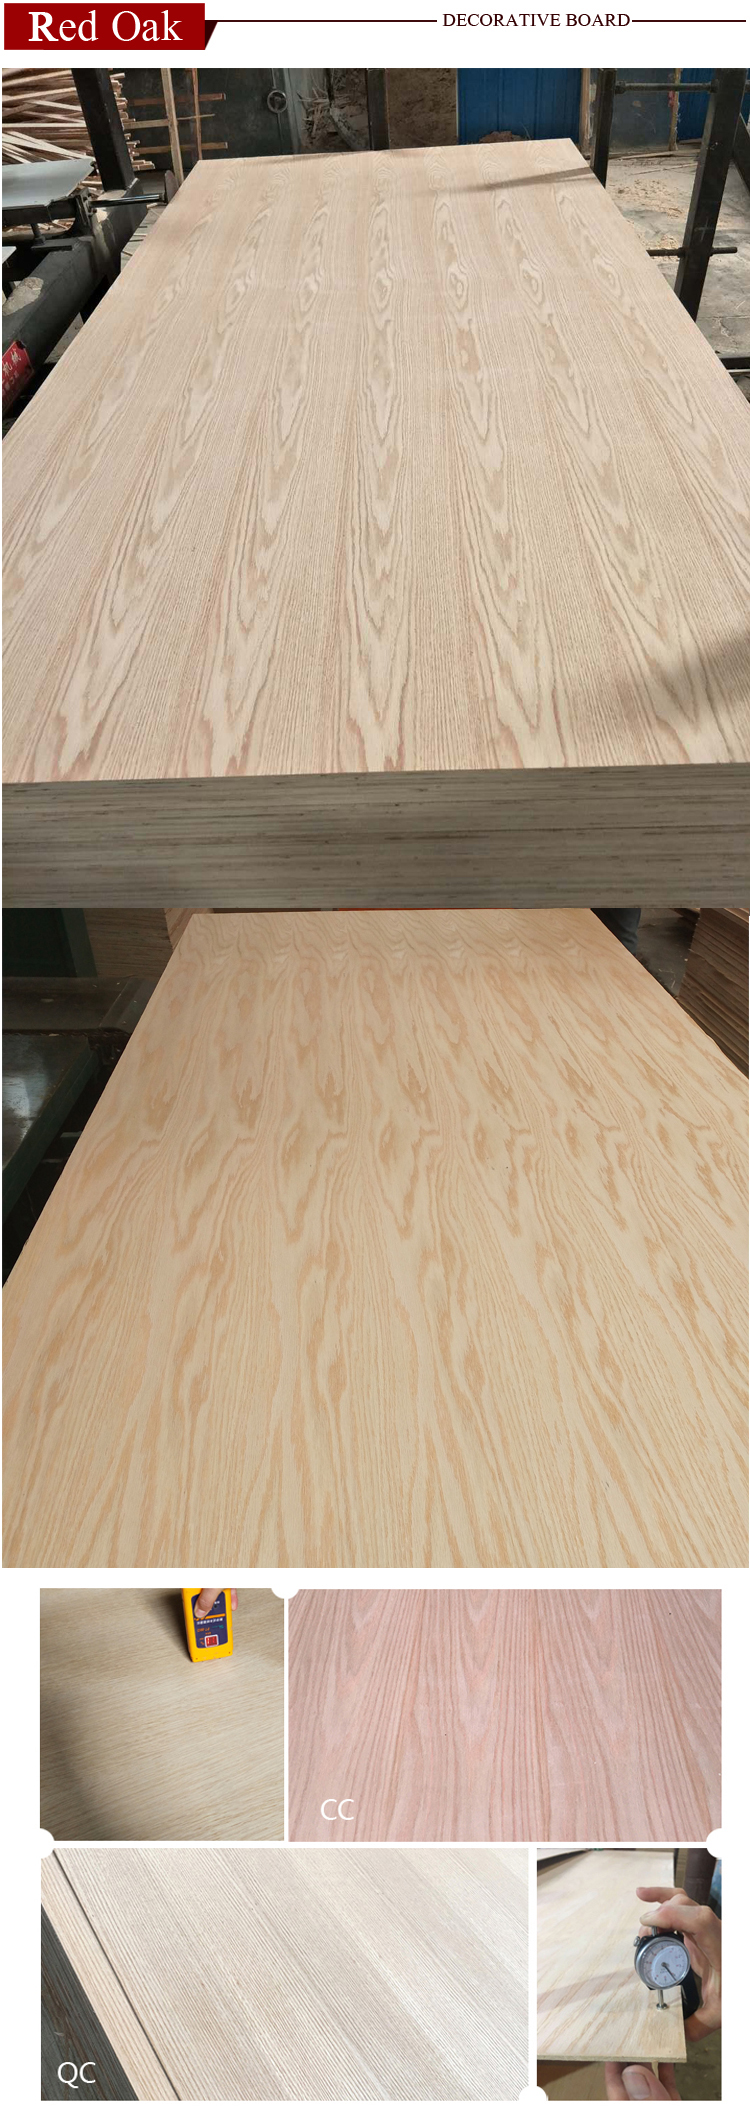 natural red oak plywood decorative paper